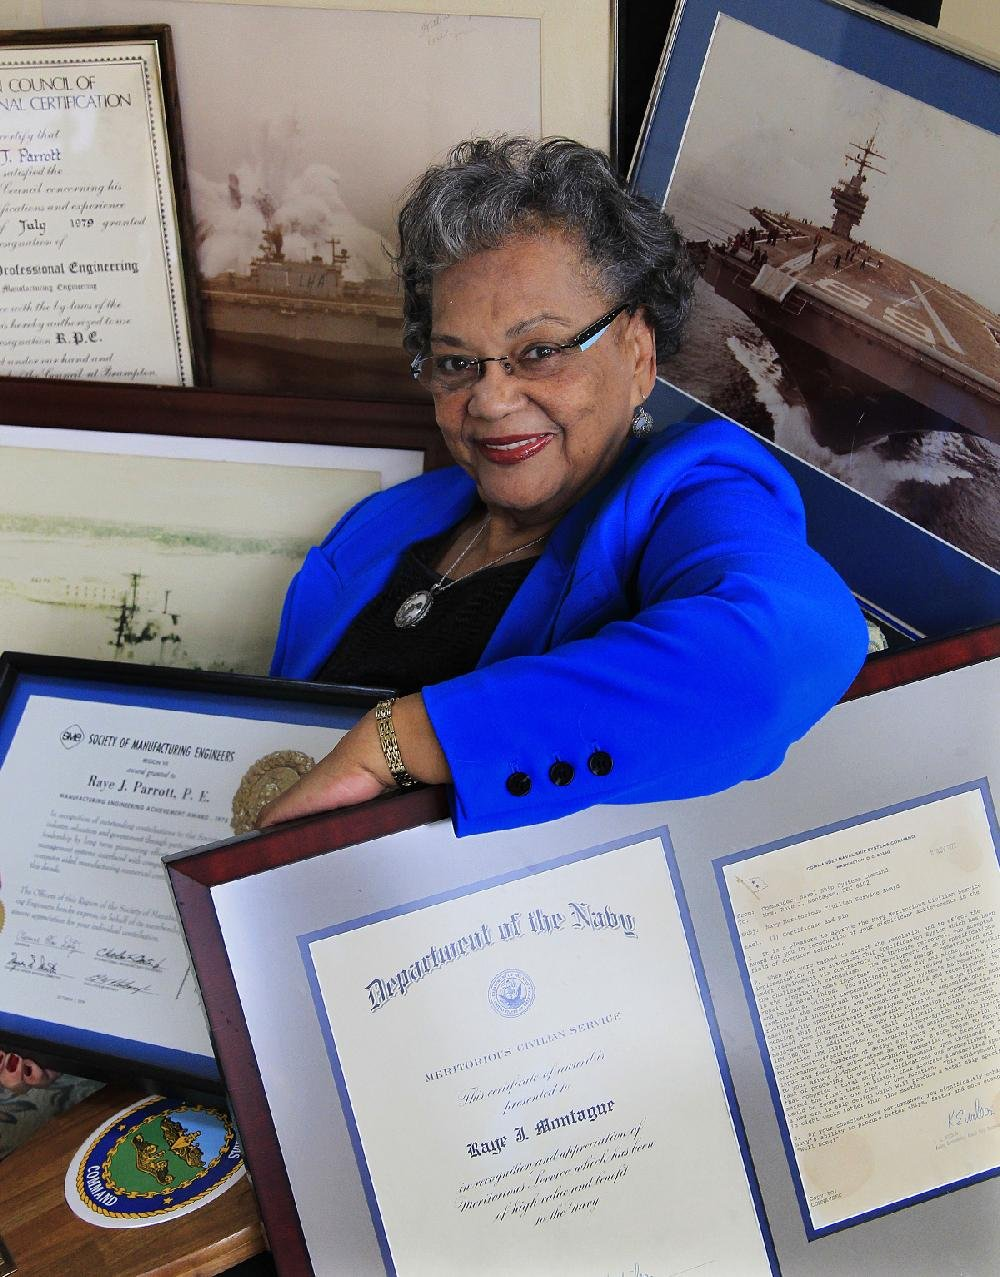 Raye Montague is shown in this file photo. Raye Montague is credited with creating the first computer generated draft of the specifications for building a U.S. Navy frigate still in use today. She broke barriers of race and gender. In 1972, she was awarded the Navy's Meritorious Civilian Service Award; she was the first woman to receive the Society of Manufacturing Engineers Achievement Award.